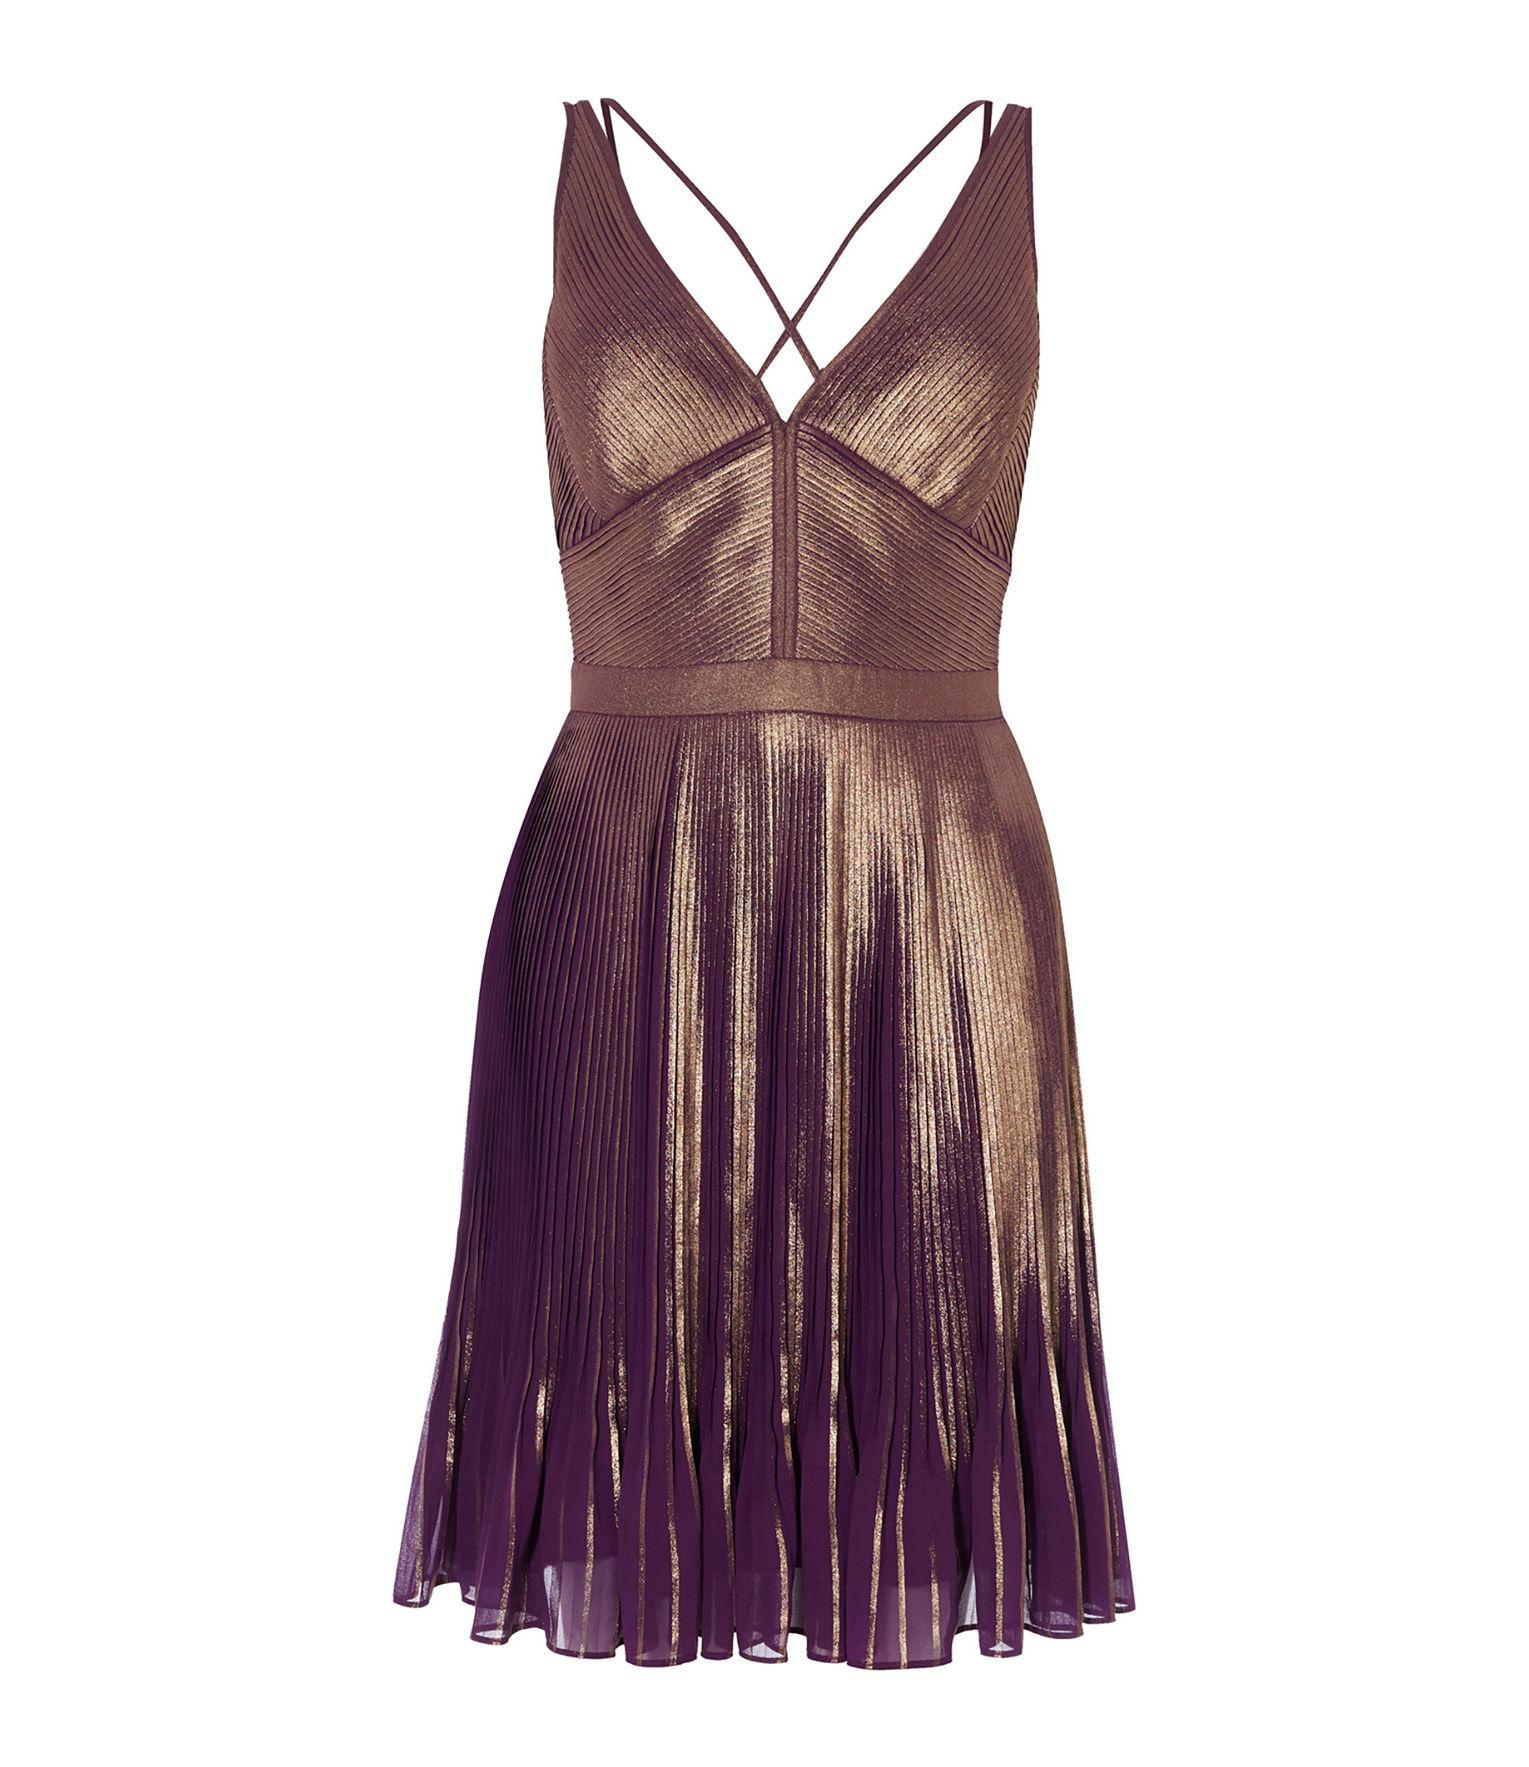 f5f0cec89a Karen Millen Metallic Pleated Dress - Multicolour in Purple - Lyst